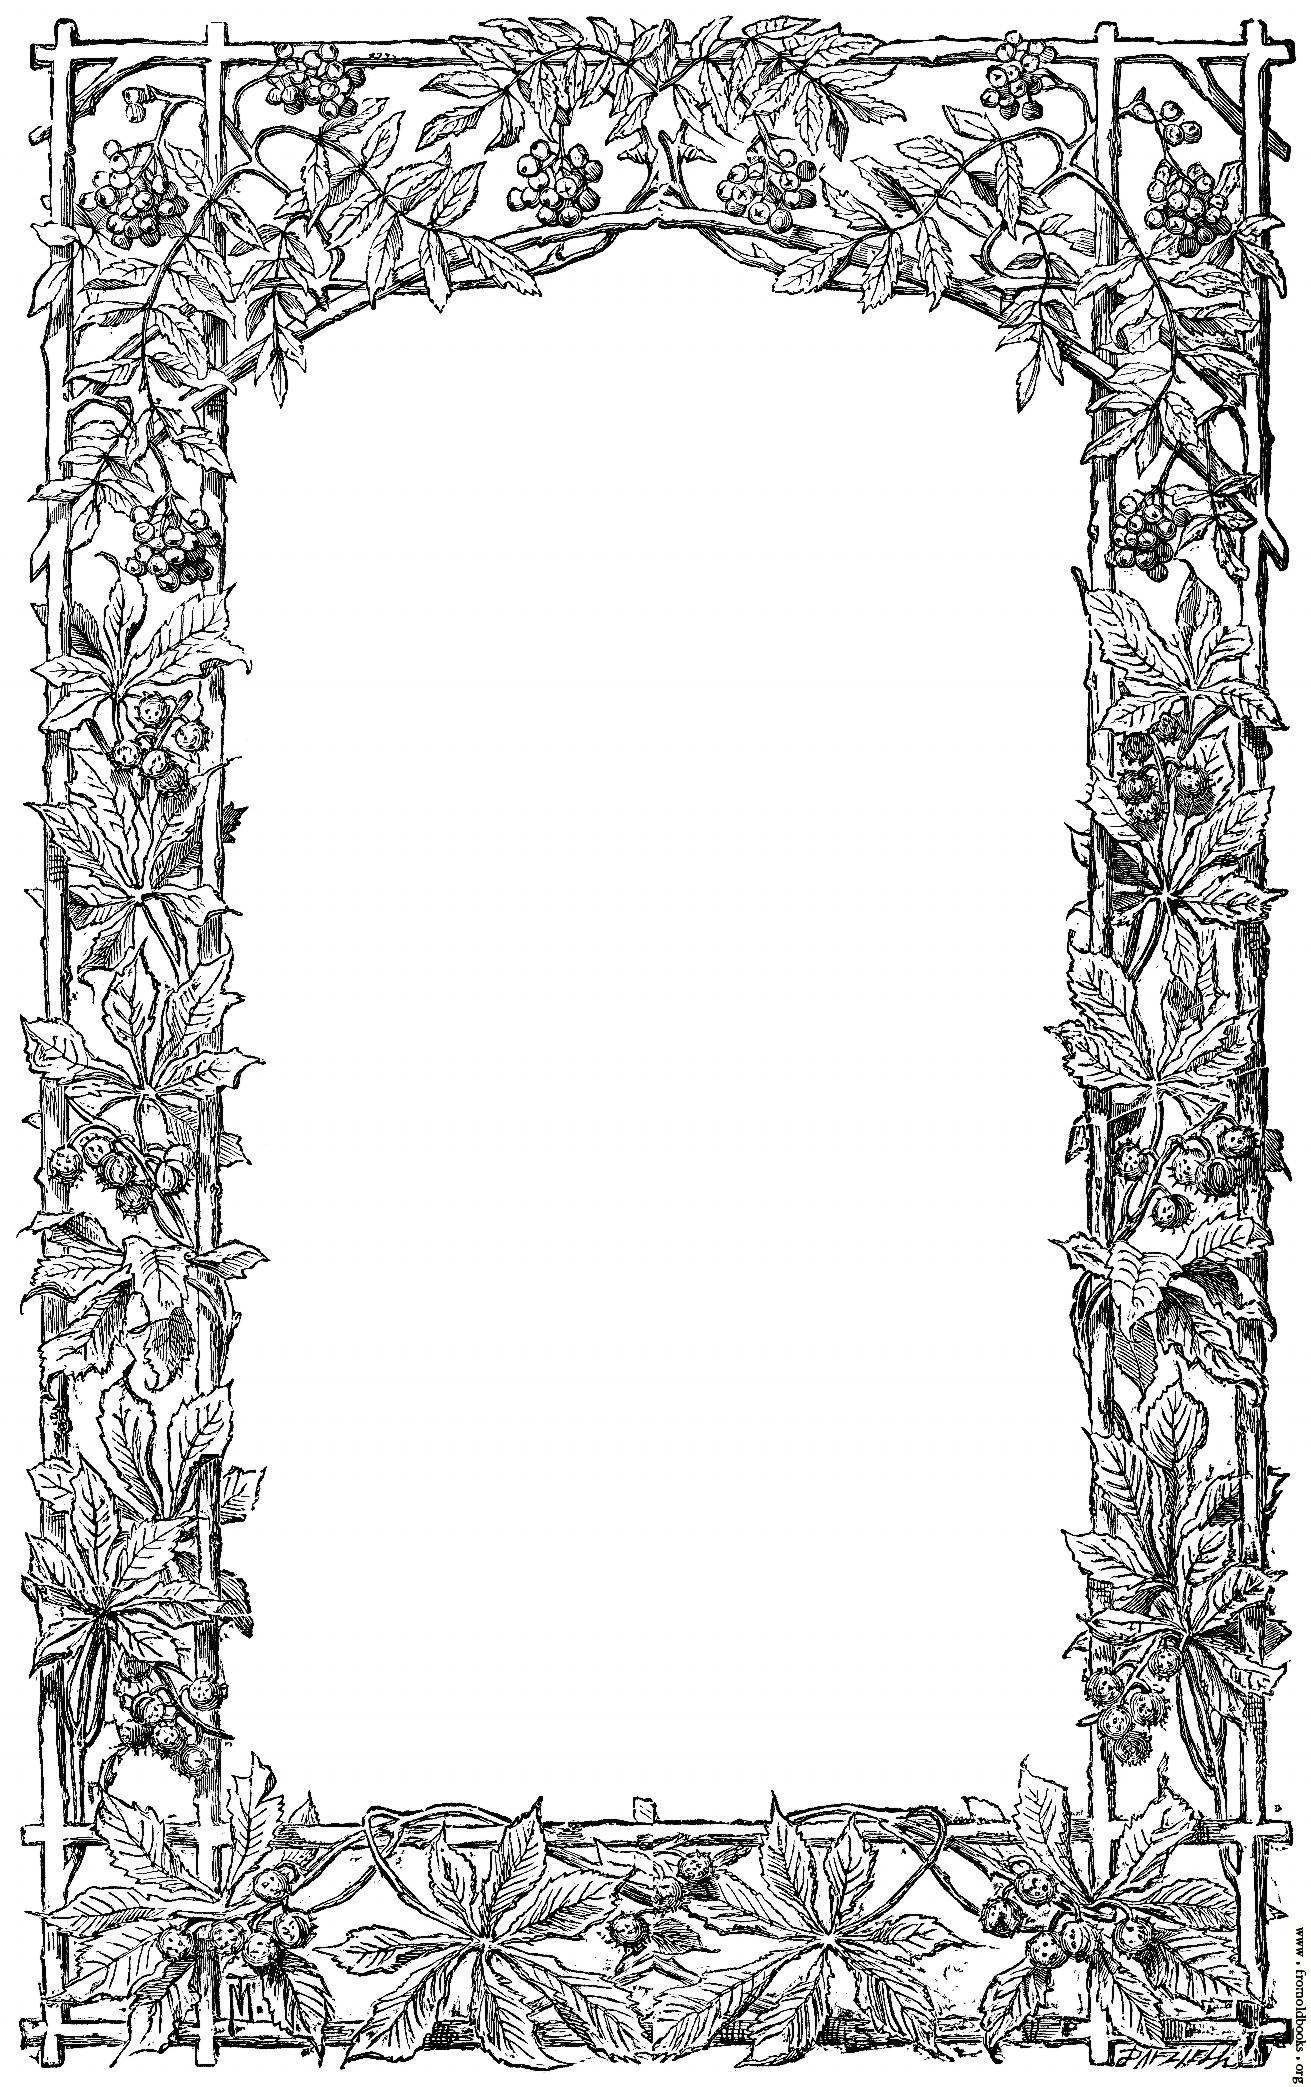 32 Cool Border Designs Free Cliparts That You Can Download To